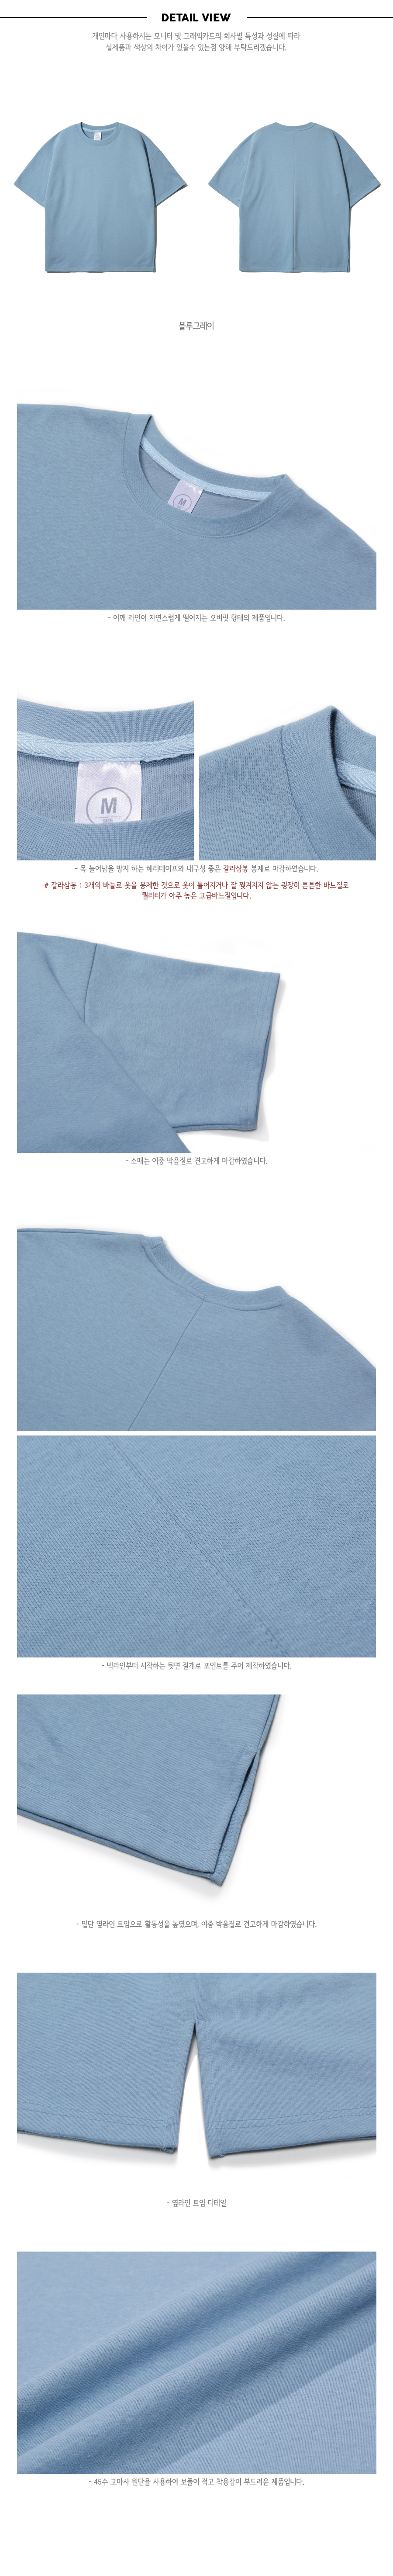 20190315_eddy_overfit_short_tee_bluegray_kj.jpg